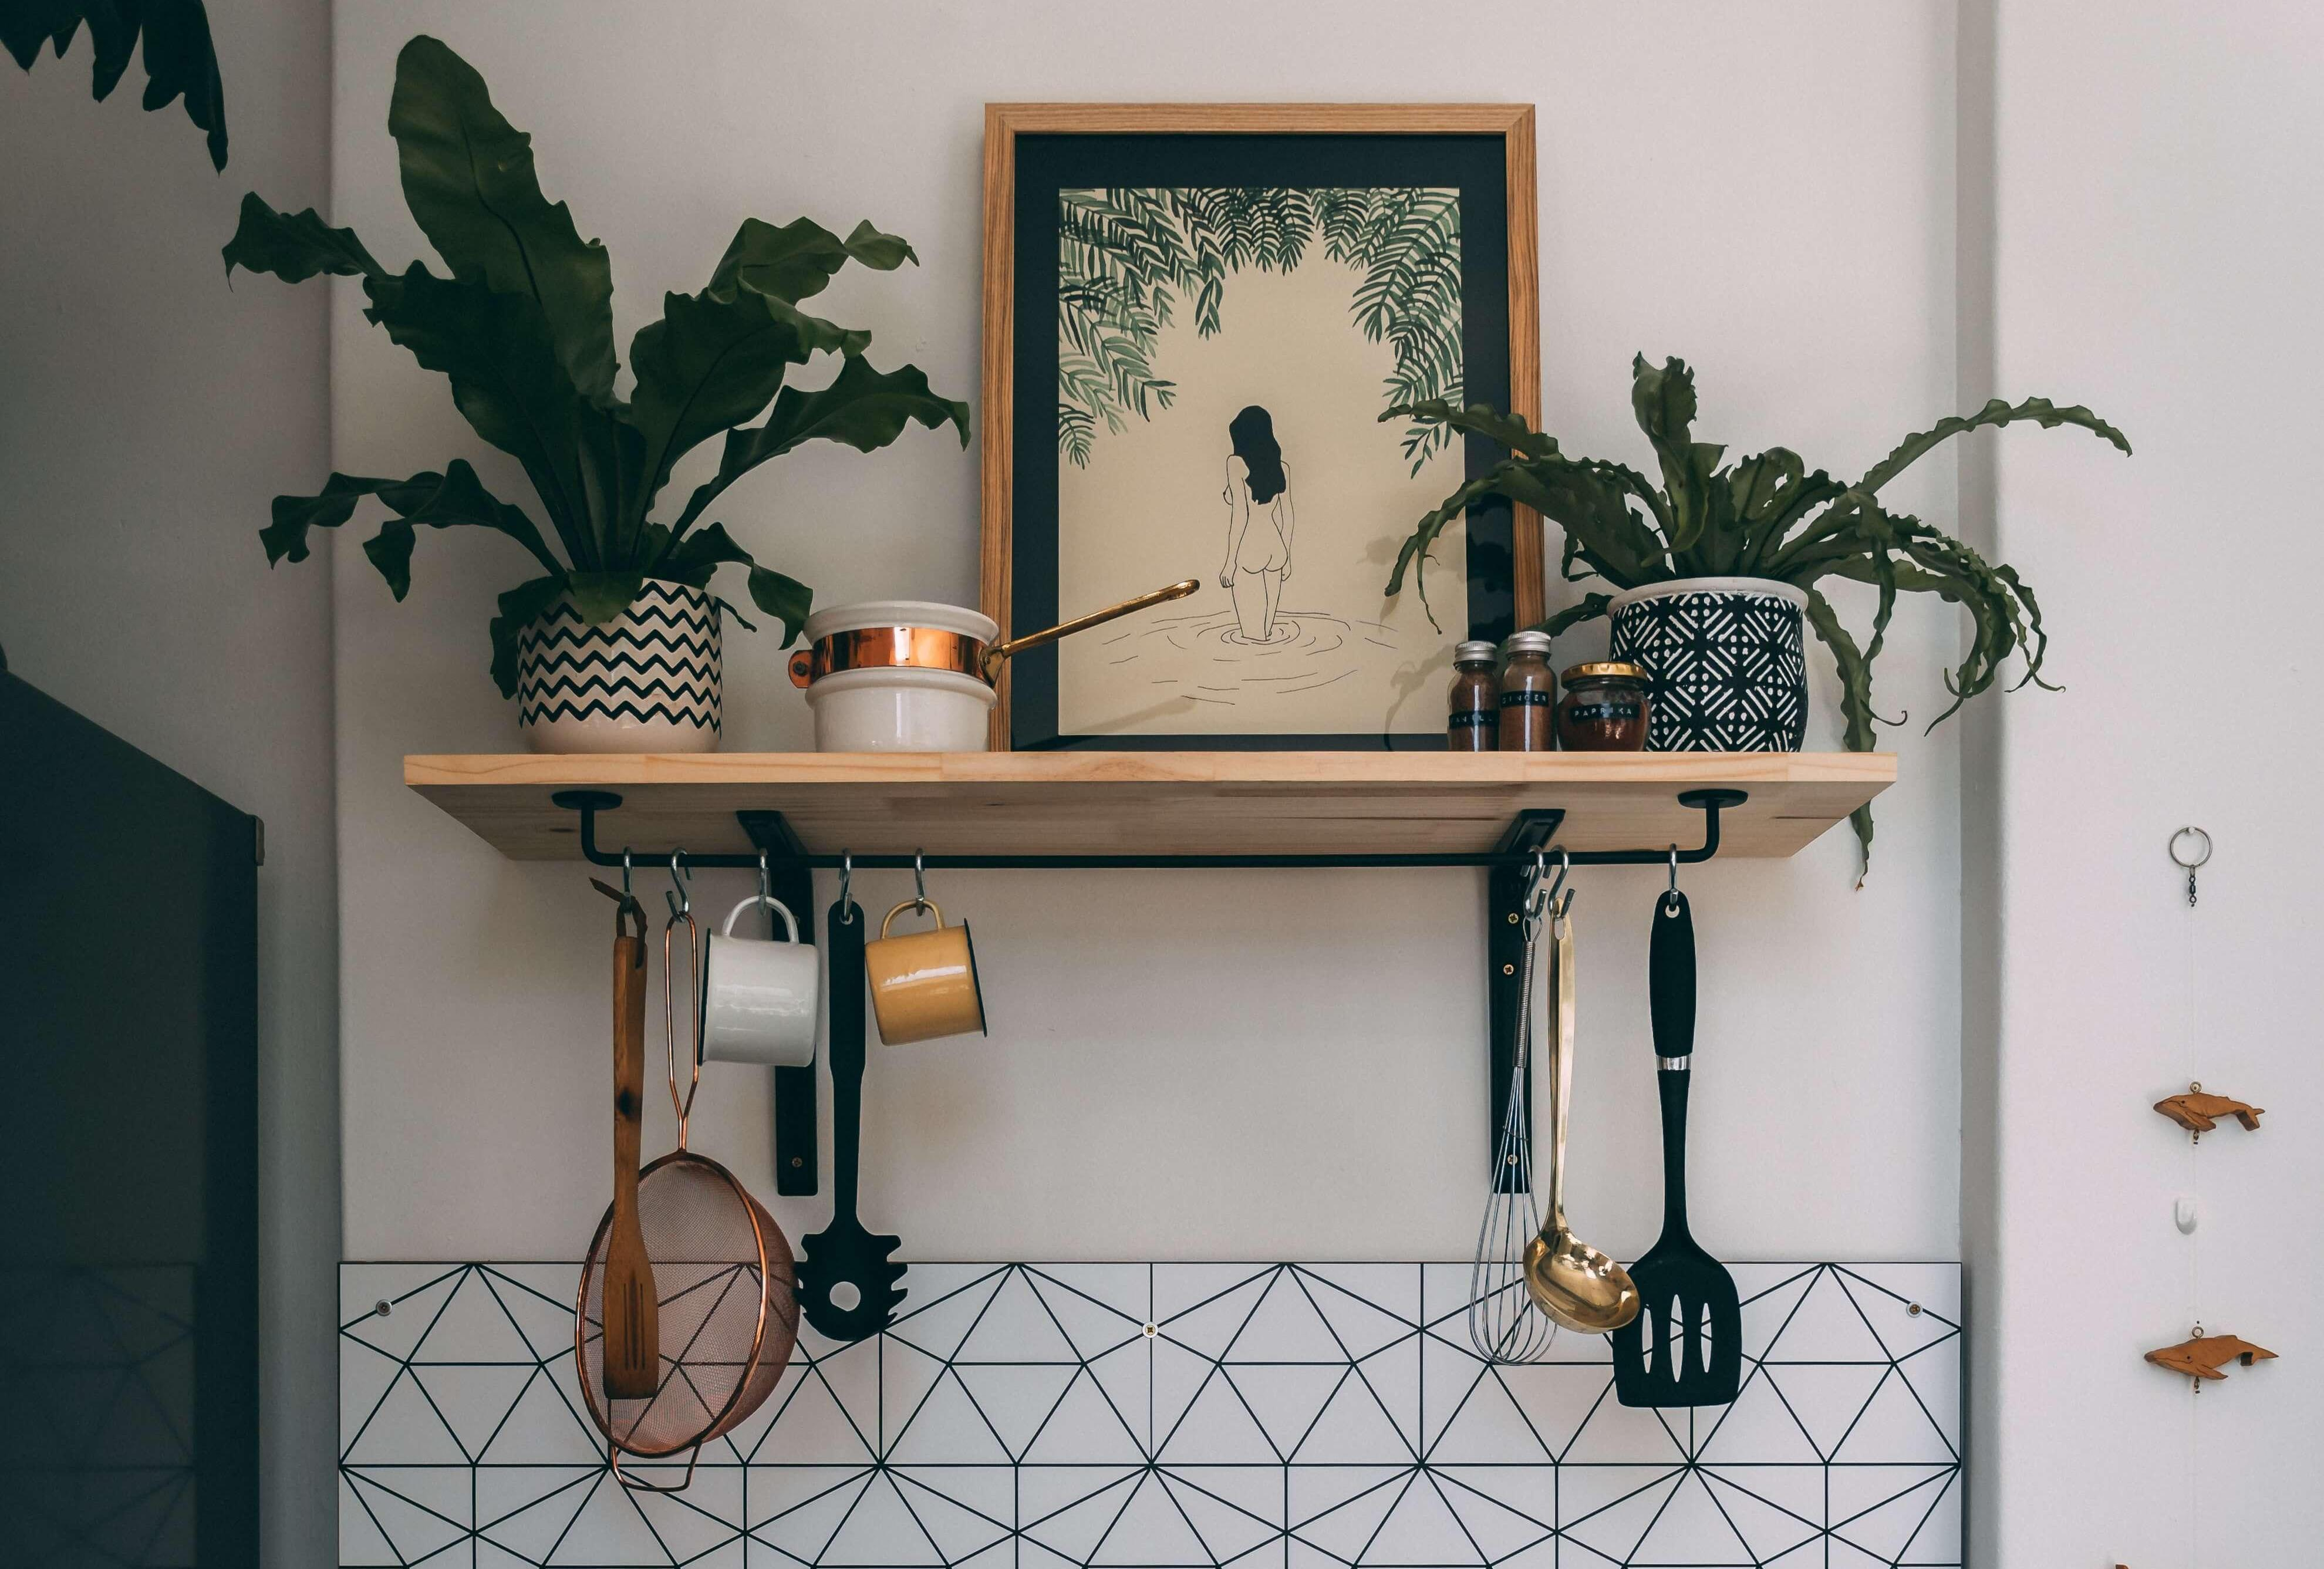 Not just decluttering: How to make minimalism work better for you